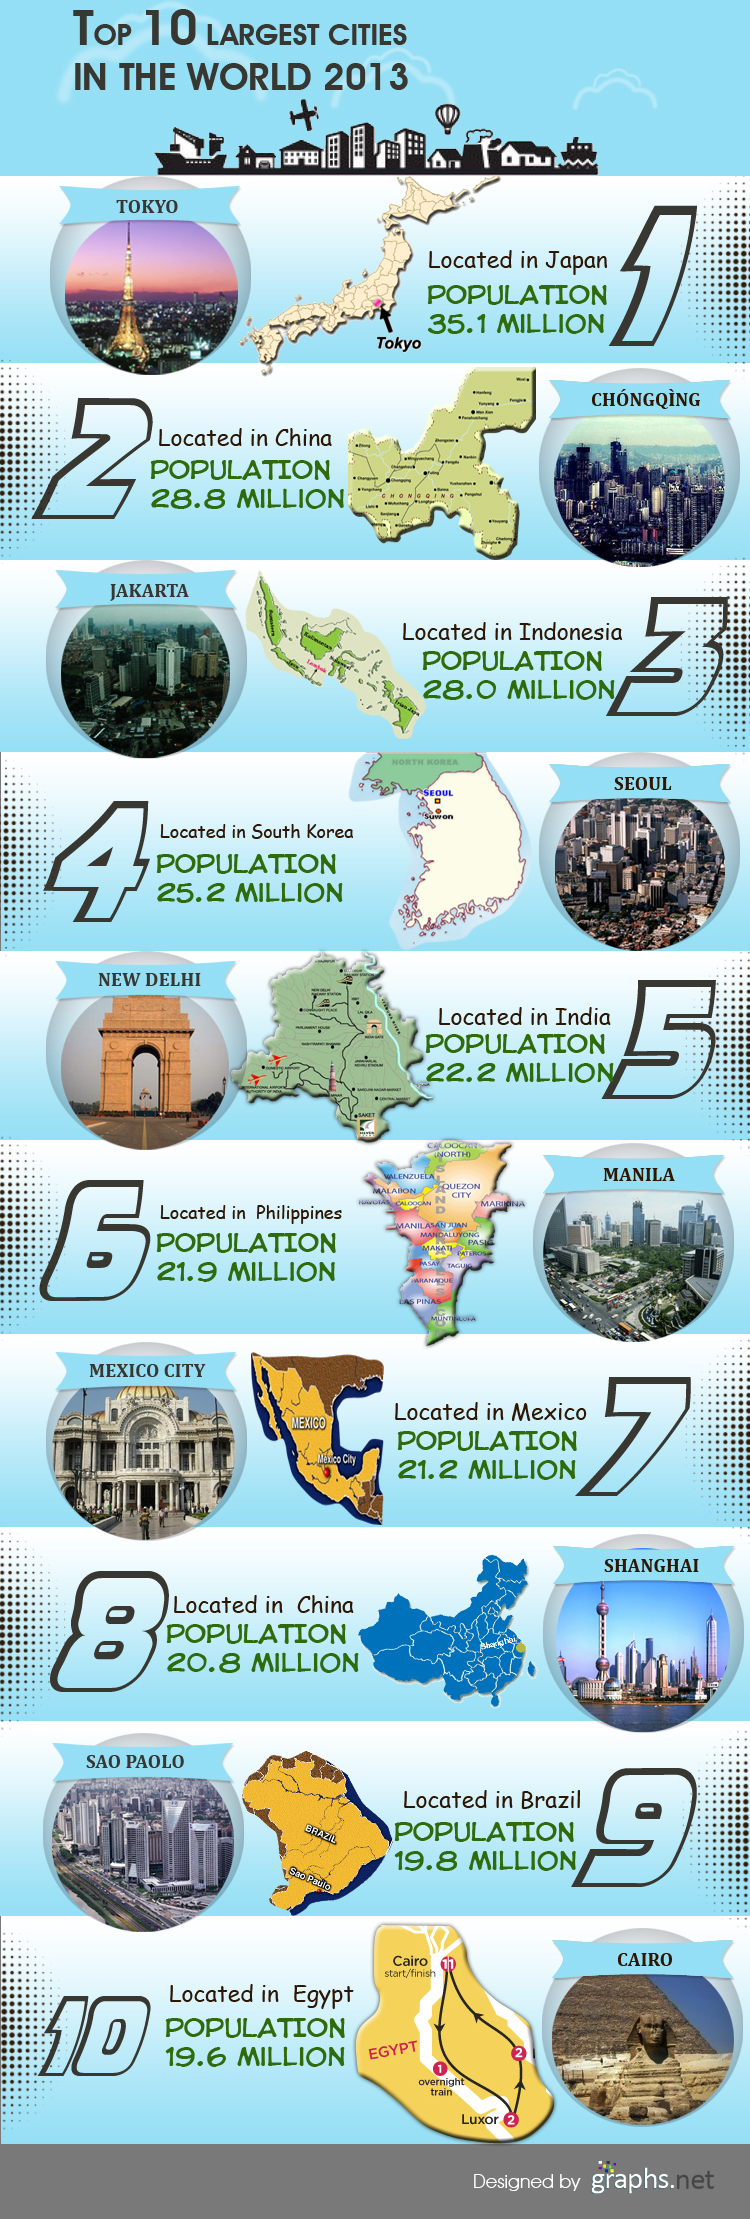 Top 10 Largest Cities in the World 2013